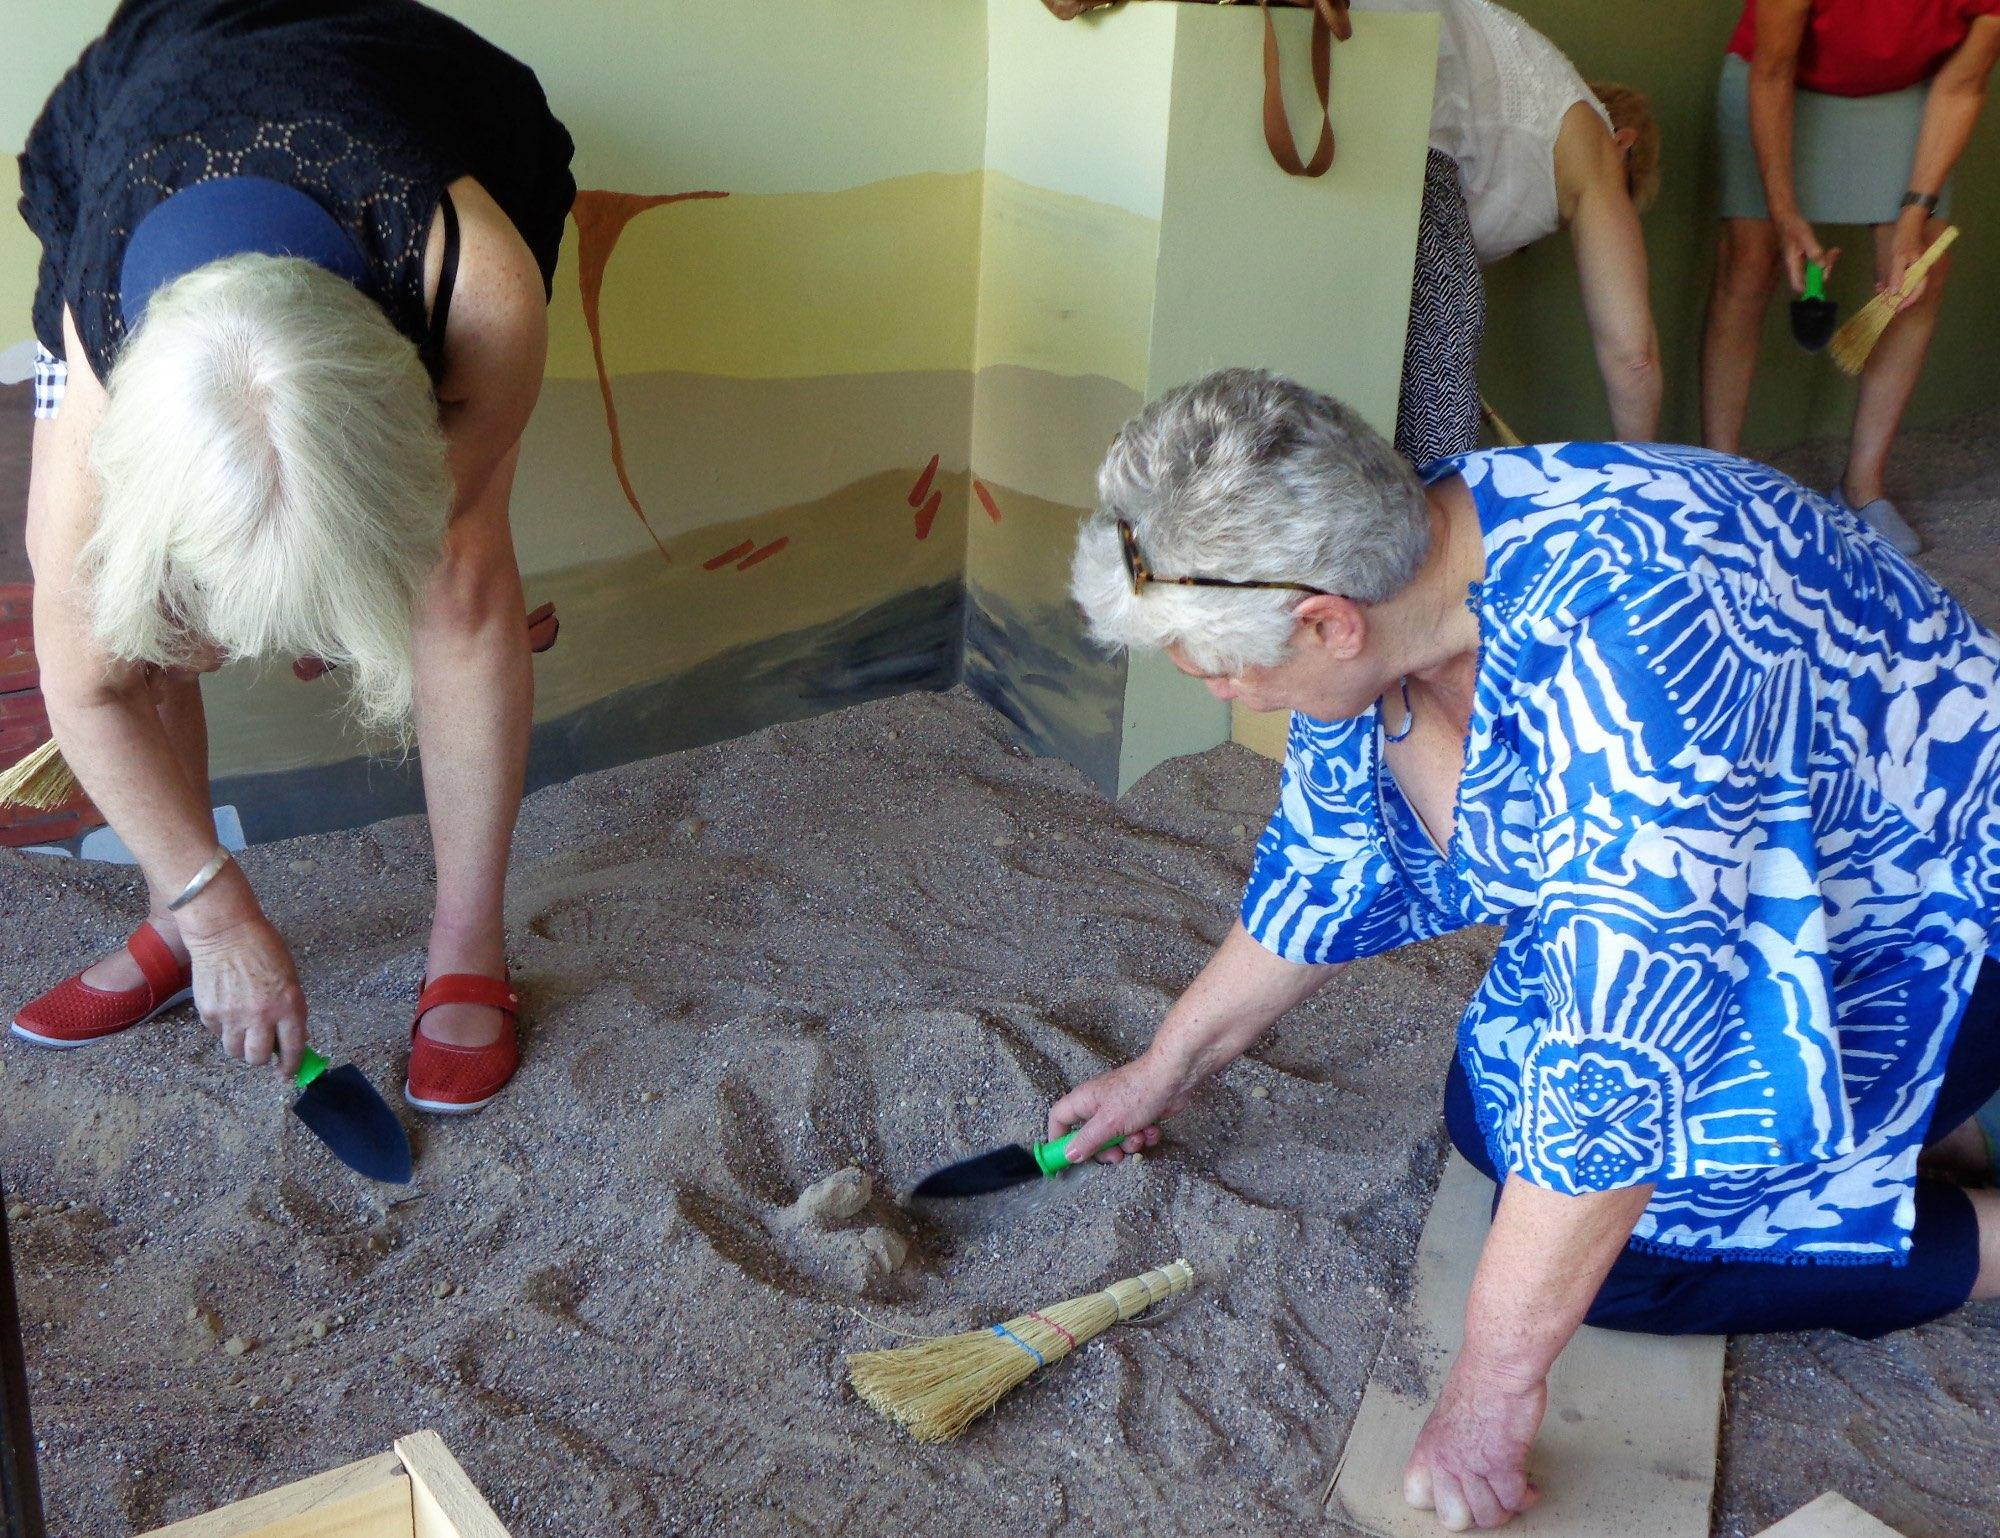 Digging with a group of Australians in the Roman Bath pit before their visit to the archaeological site. – © Dig it